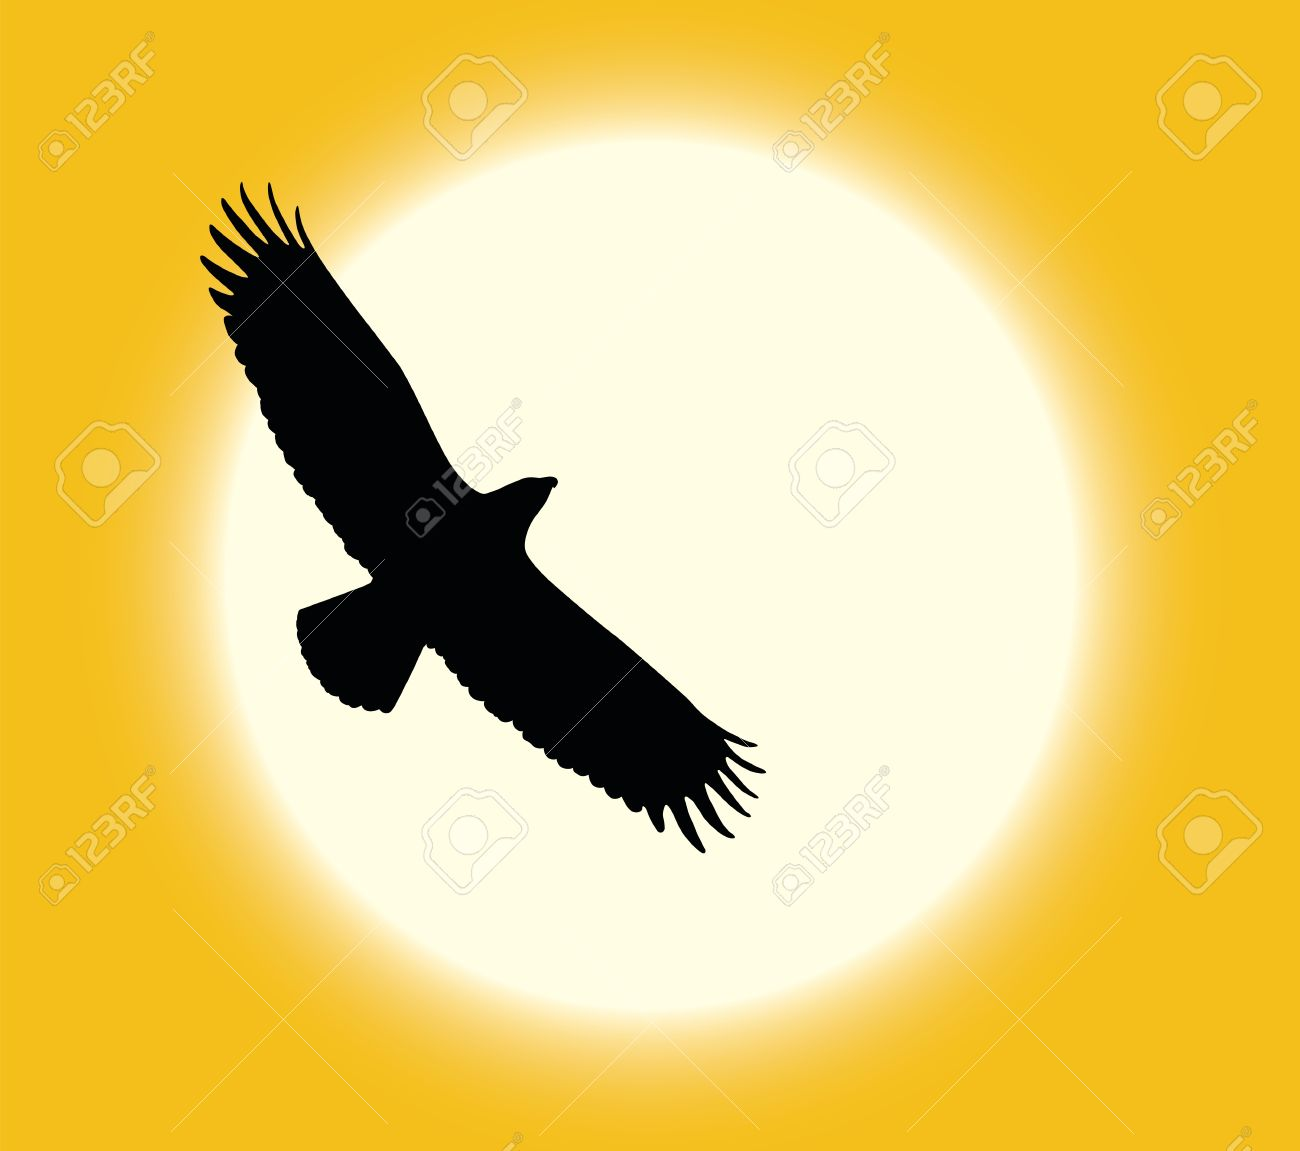 Silhouette of flying eagle on sun background Stock Vector - 11915880